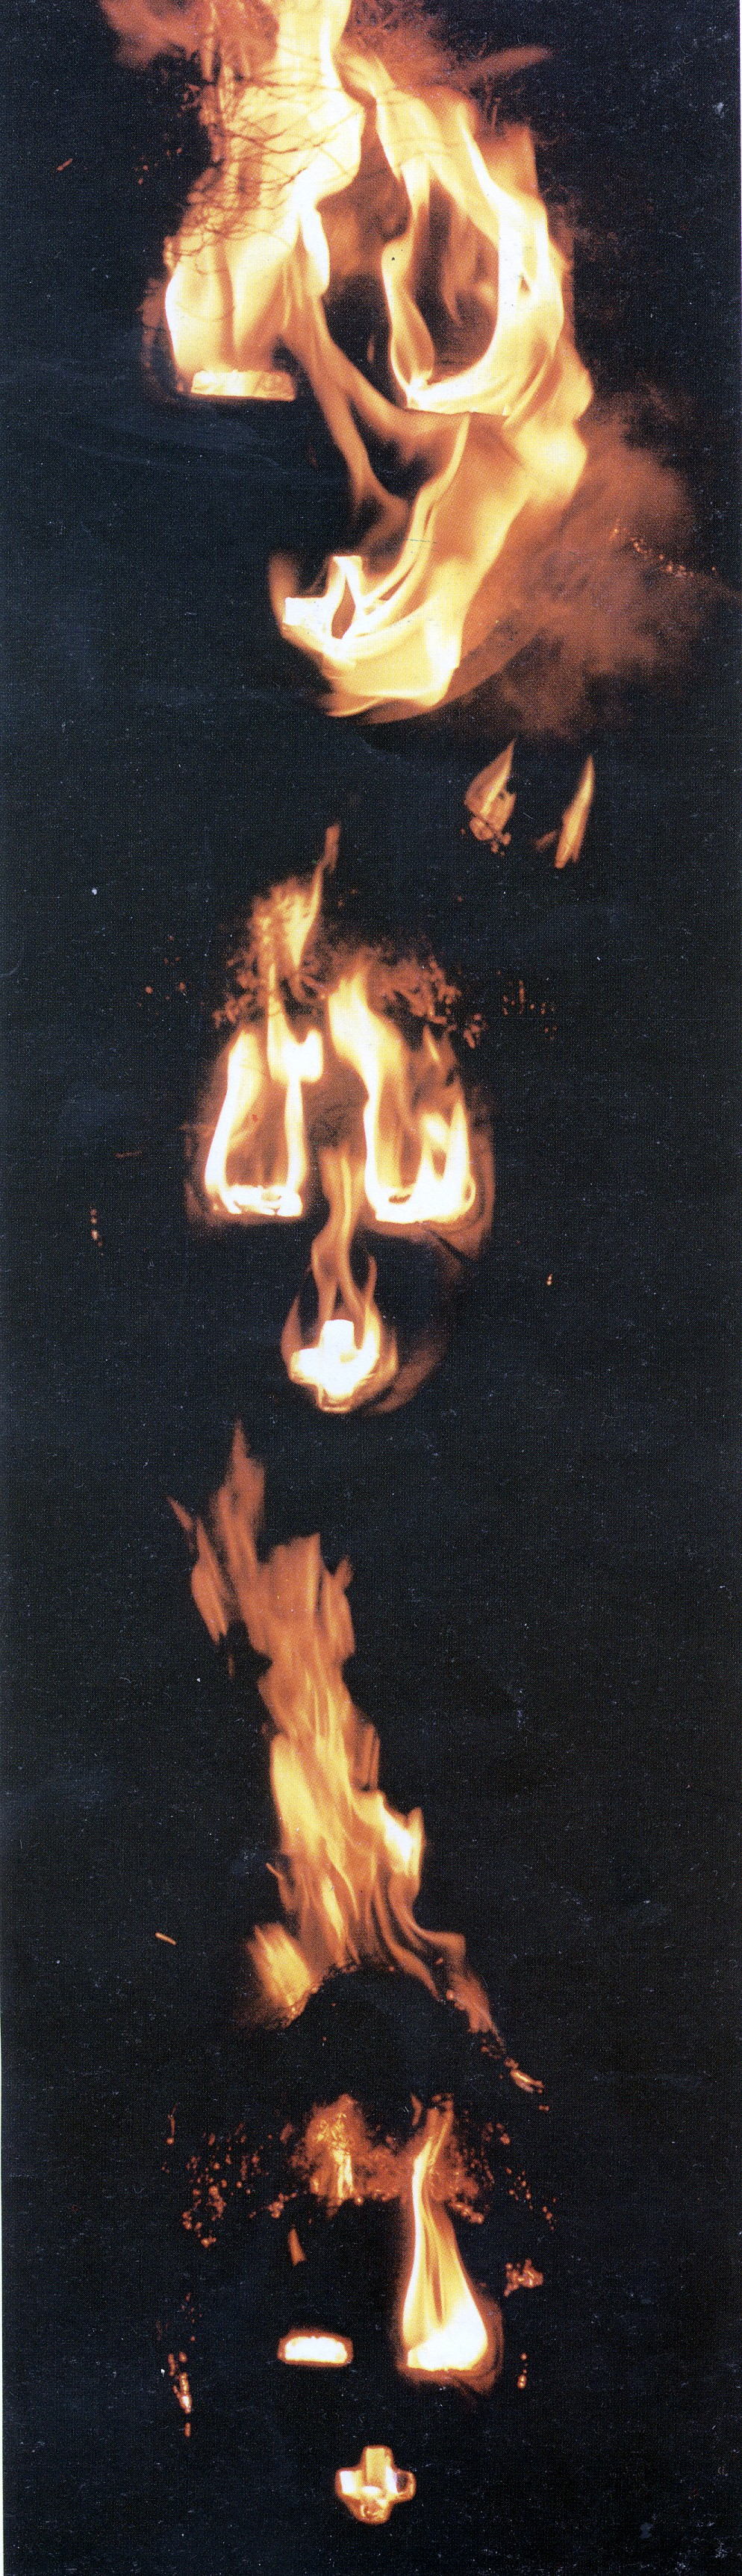 Para Noire (detail of event), 1996. Wood and grass, 228 x 123 x 22 cm. Set alight before assembled audience, Harare (Photo: B Murray. Published in Gallery)